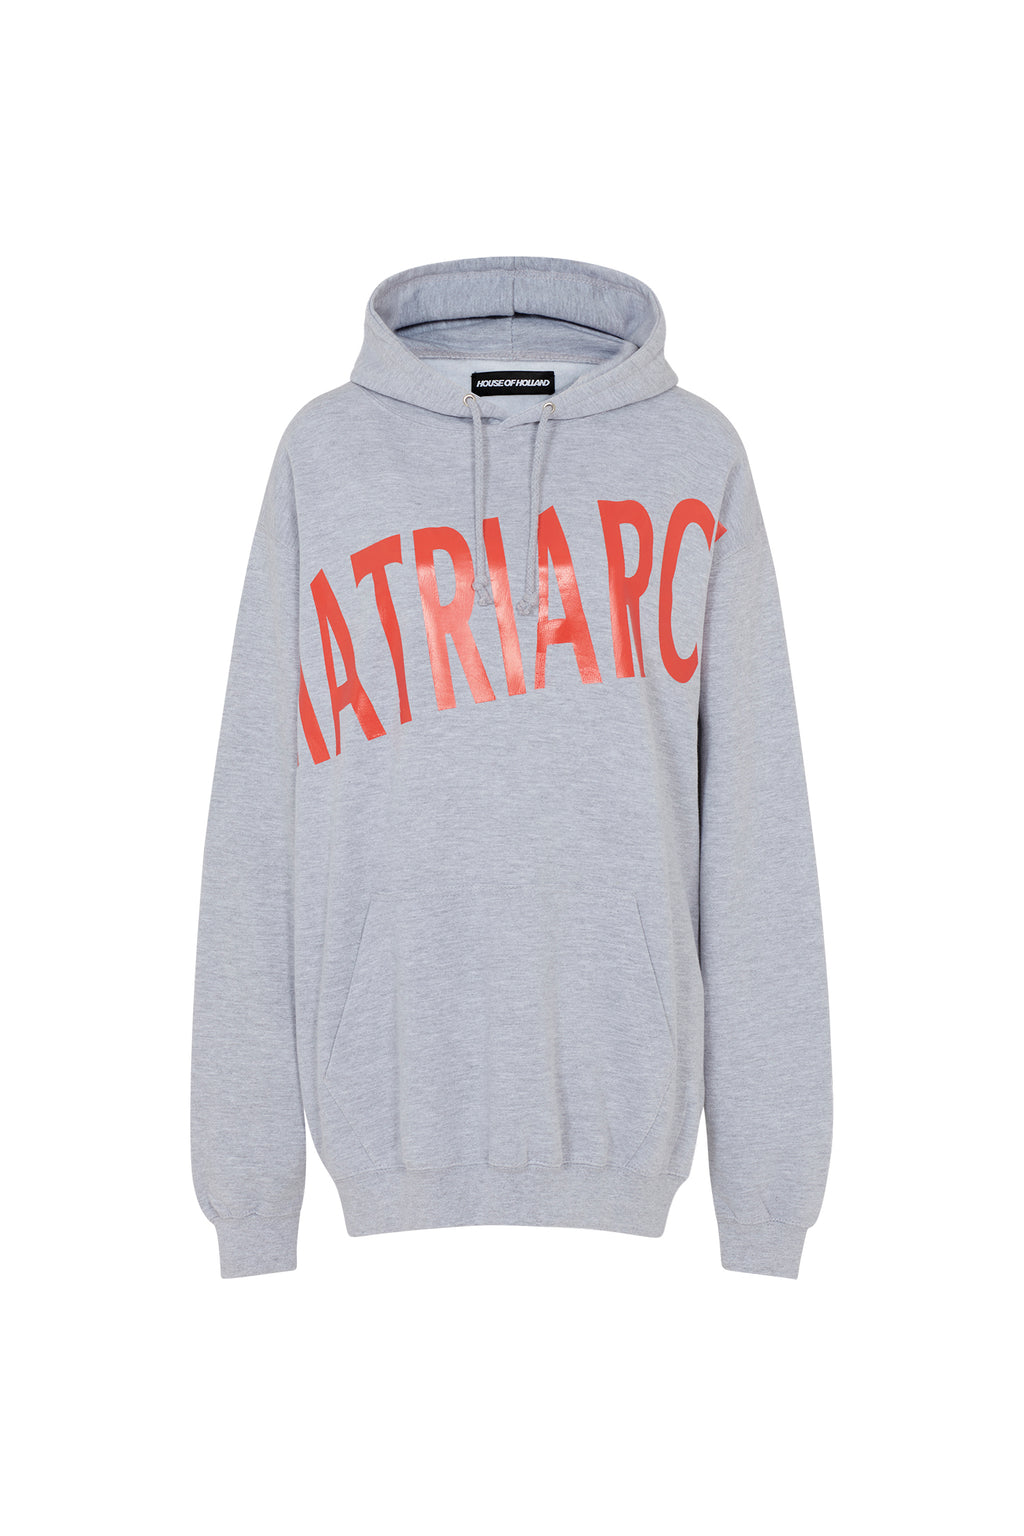 House of Holland x Moon Club 'Matriarch' Grey Hoodie by House of Holland